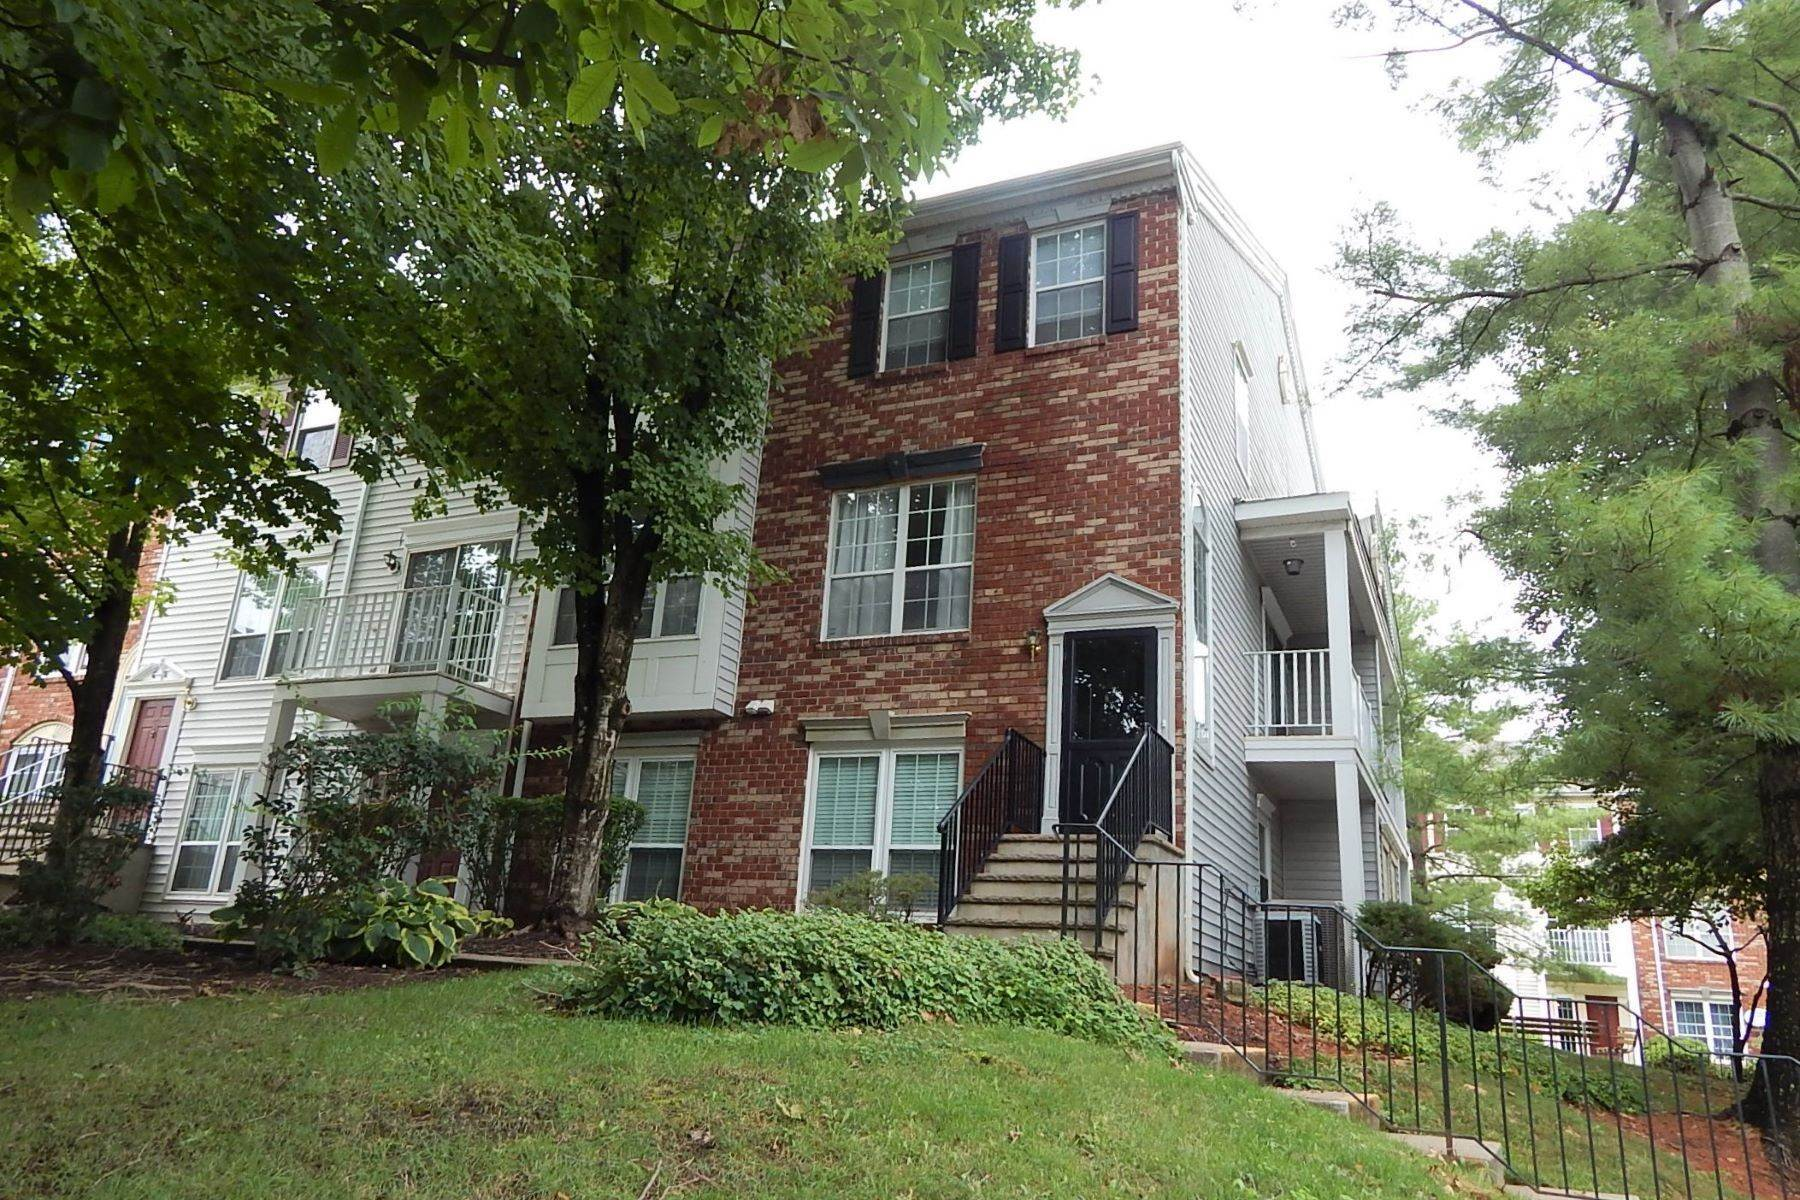 townhouses at Two Bedroom Townhome Available for Rent 176 Sapphire Lane, Somerset, New Jersey 08823 United States